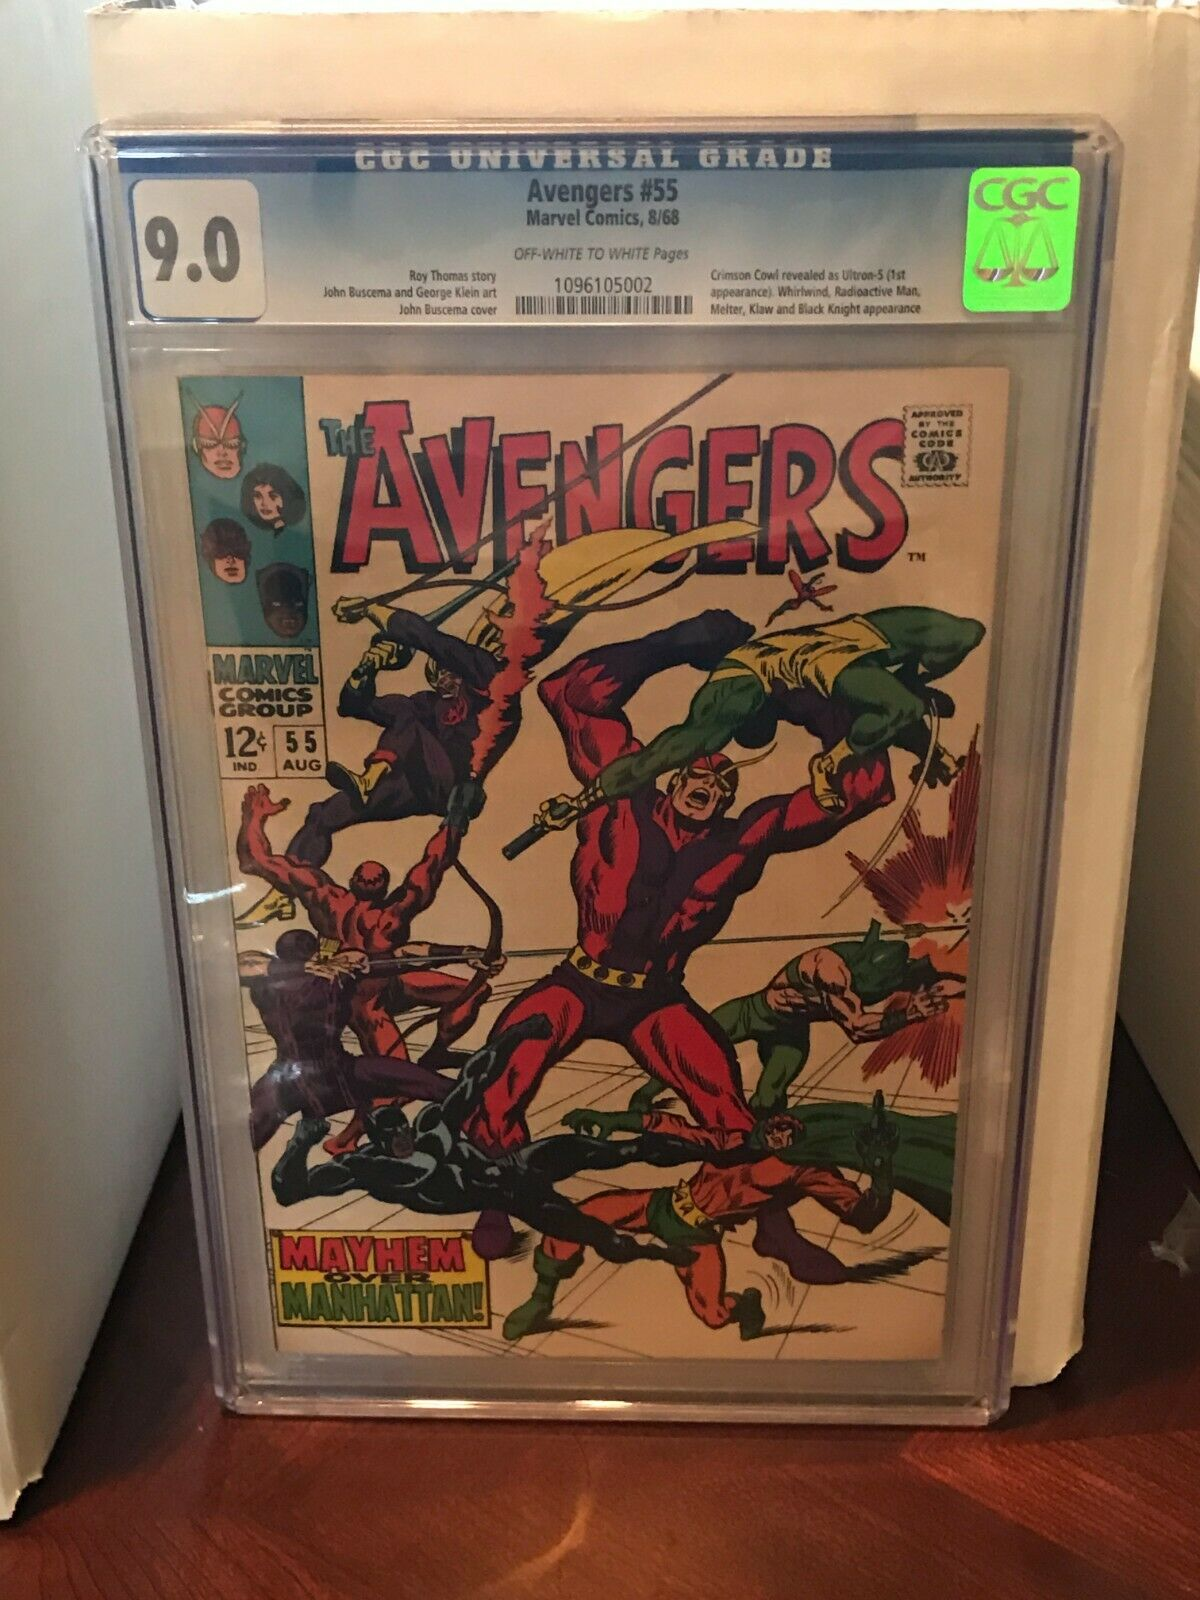 The Avengers #55 - CGC 9.0 - 1st Appearance of Ultron